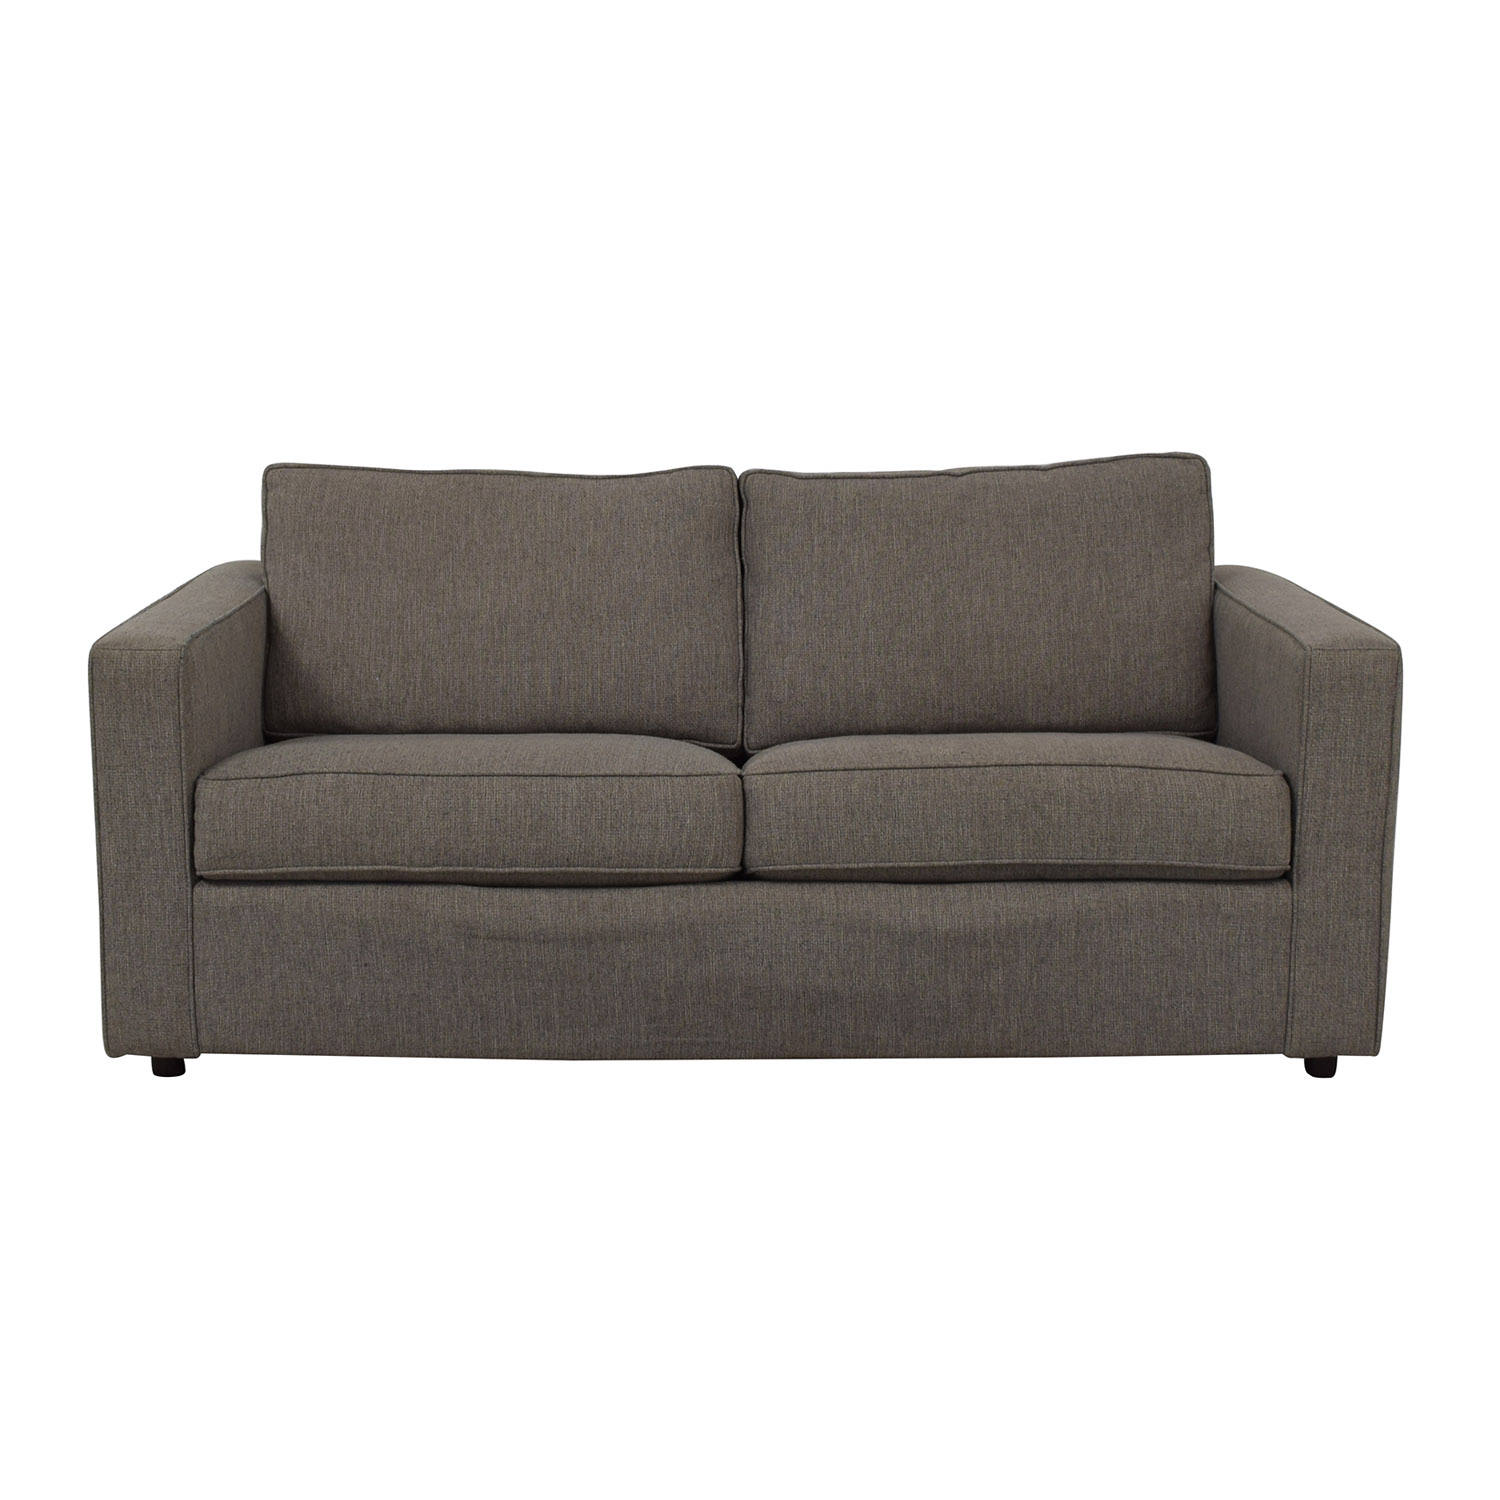 Arhaus Arhaus Filmore Full Sleeper Sofa second hand